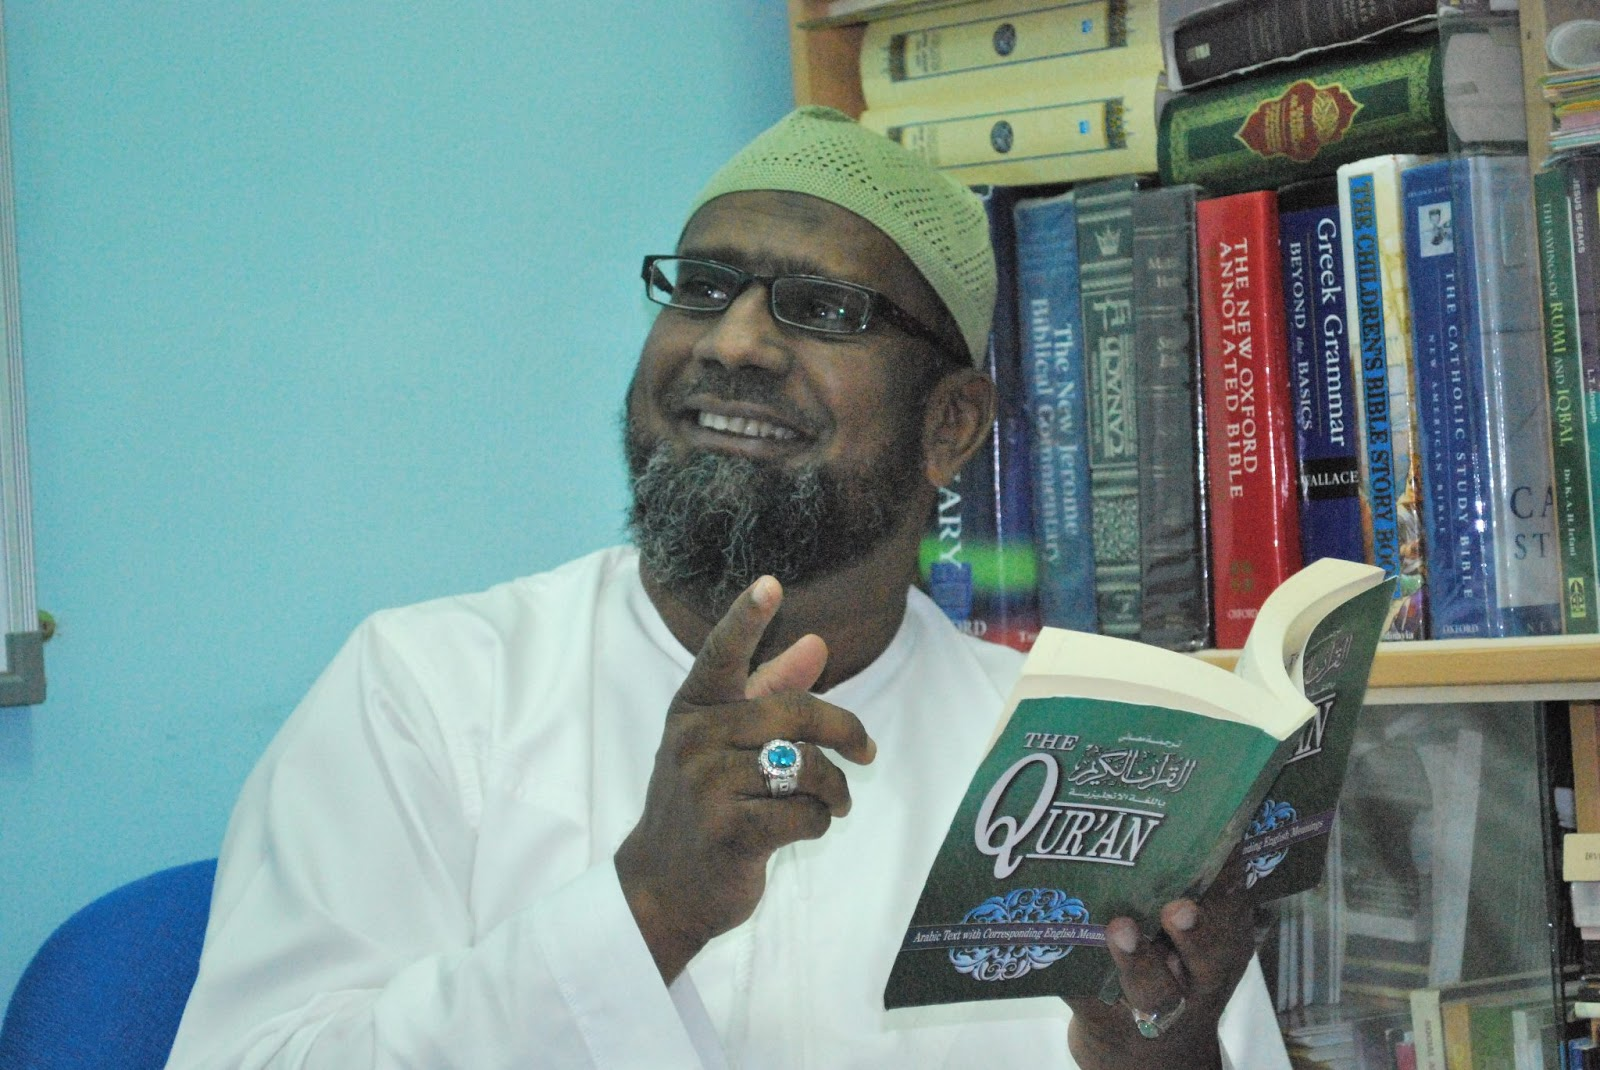 Can We Give the Qur'an to non-Muslims?